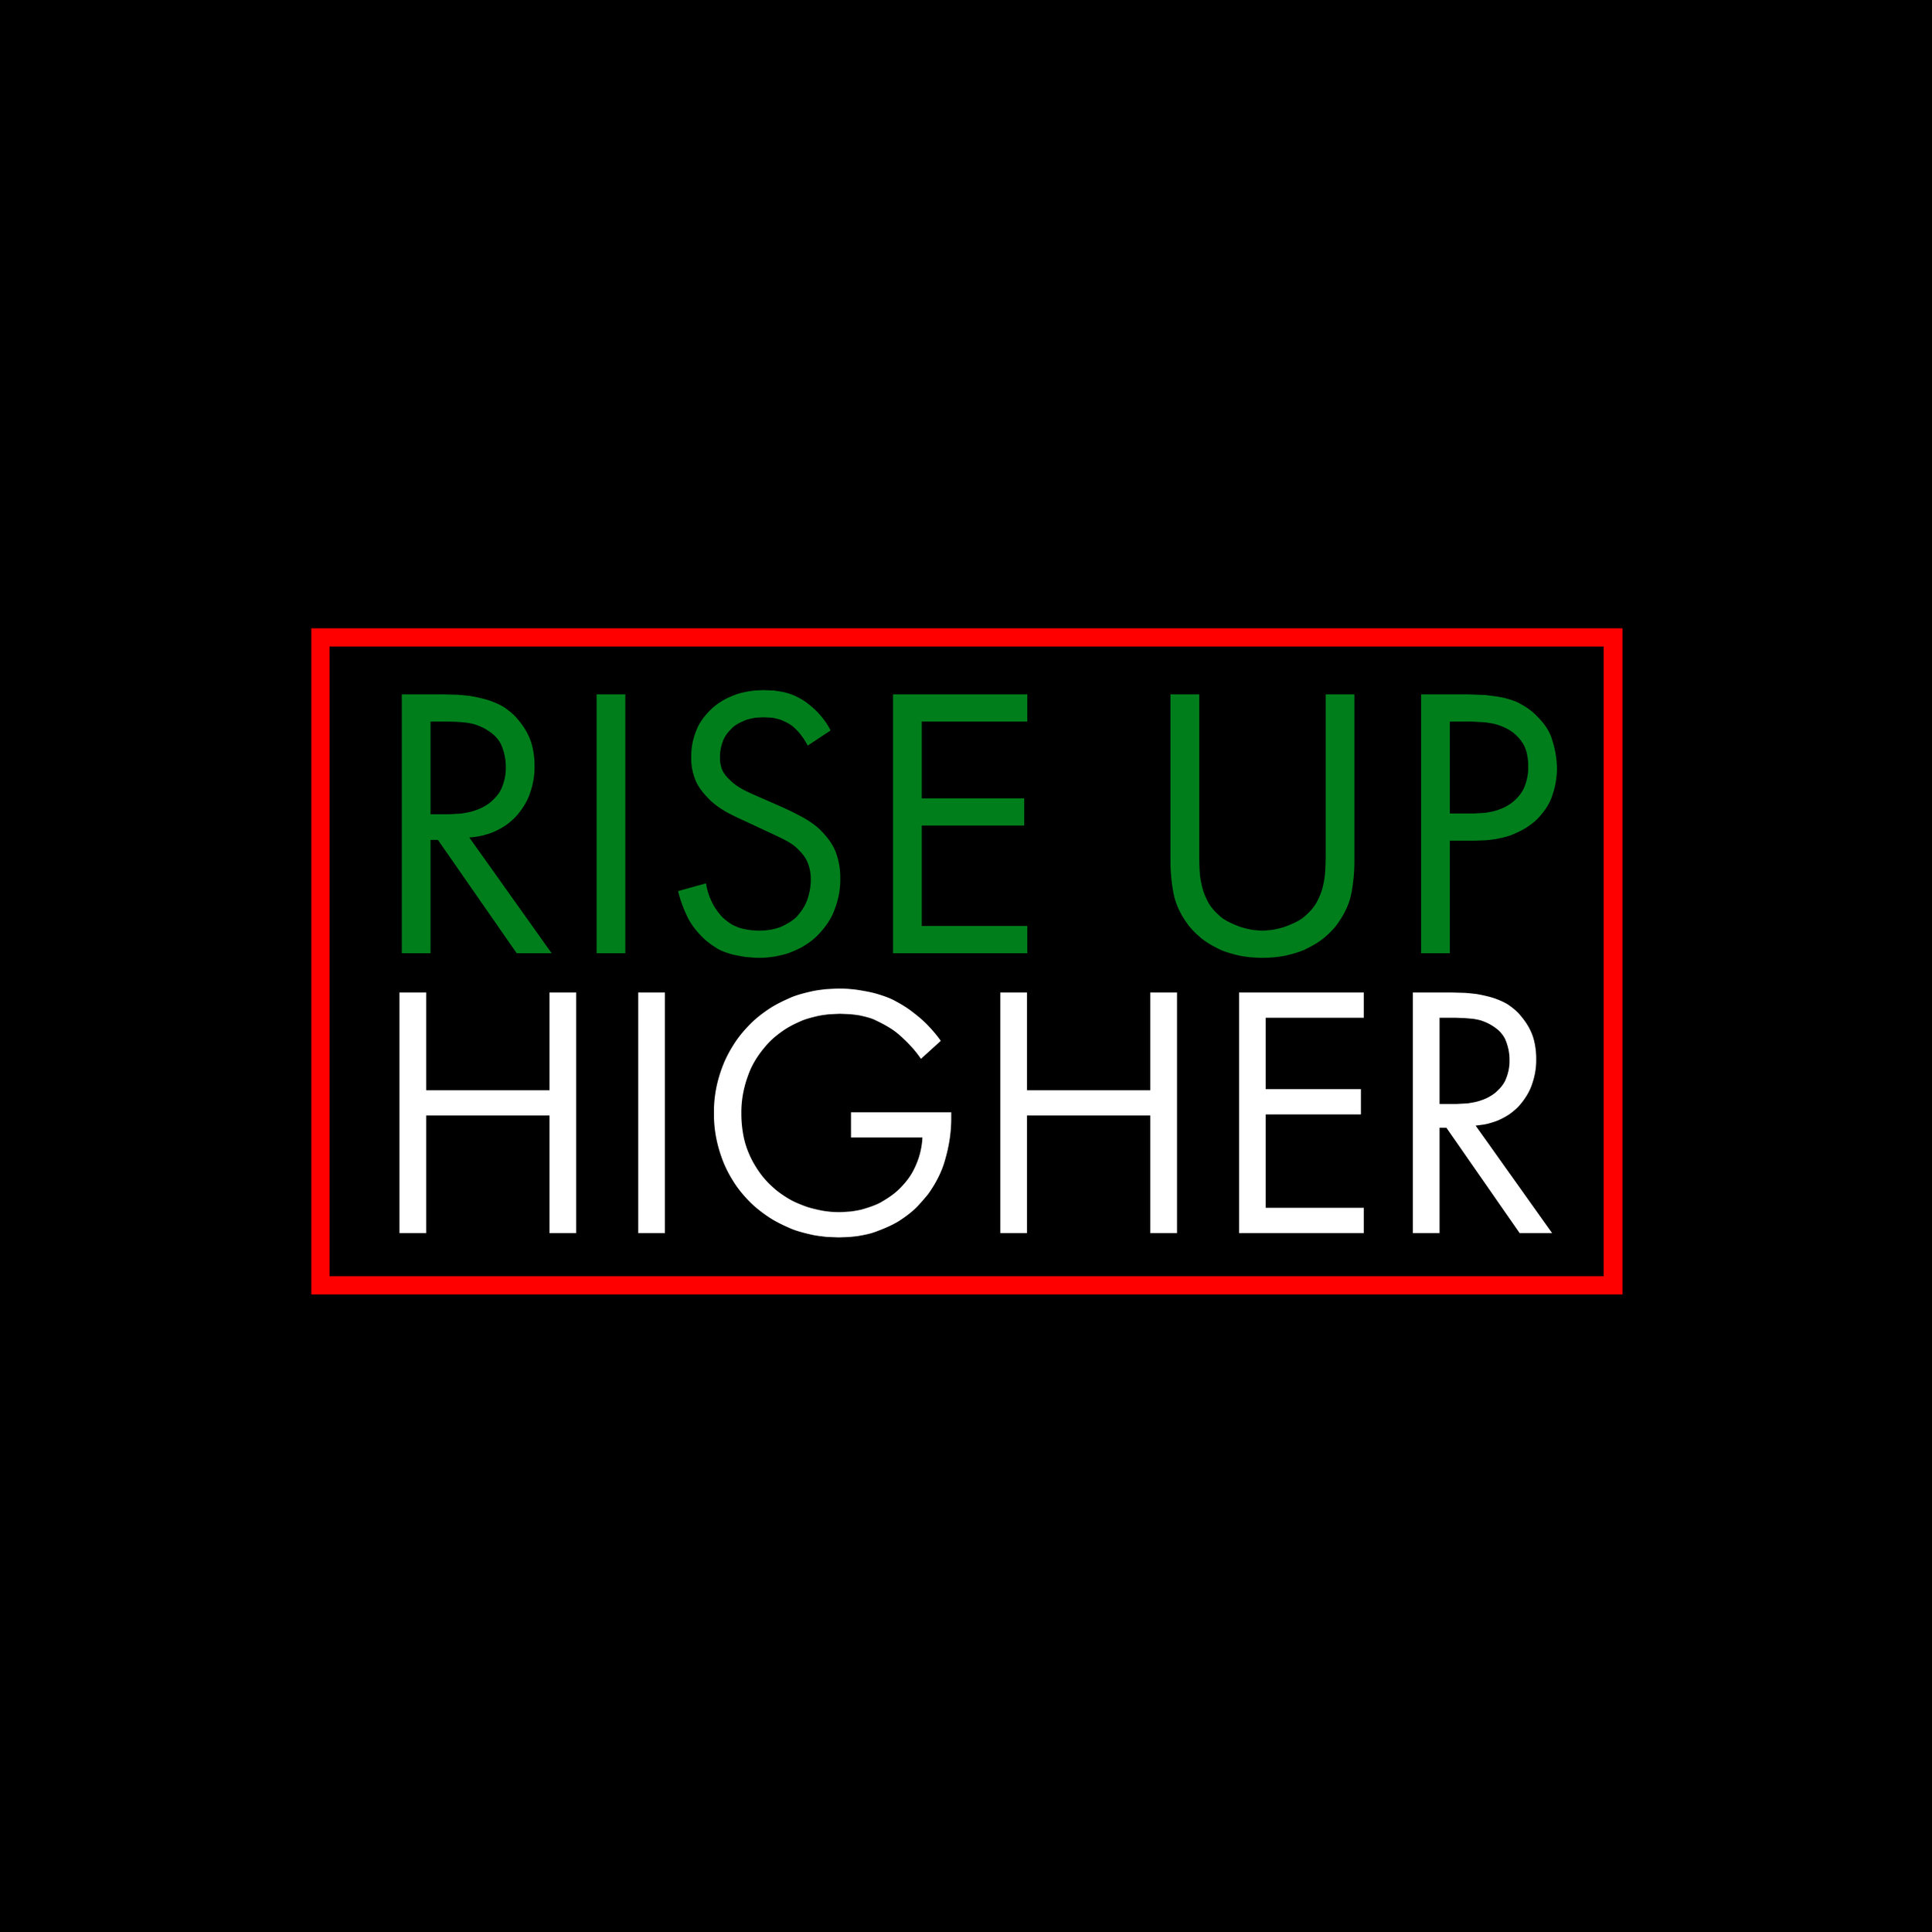 Music as a tool for social good. - Rise Up Higher is a music non-profit founded by Nique Love Rhodes & The NLR Experience to inspire youth and communities through music.